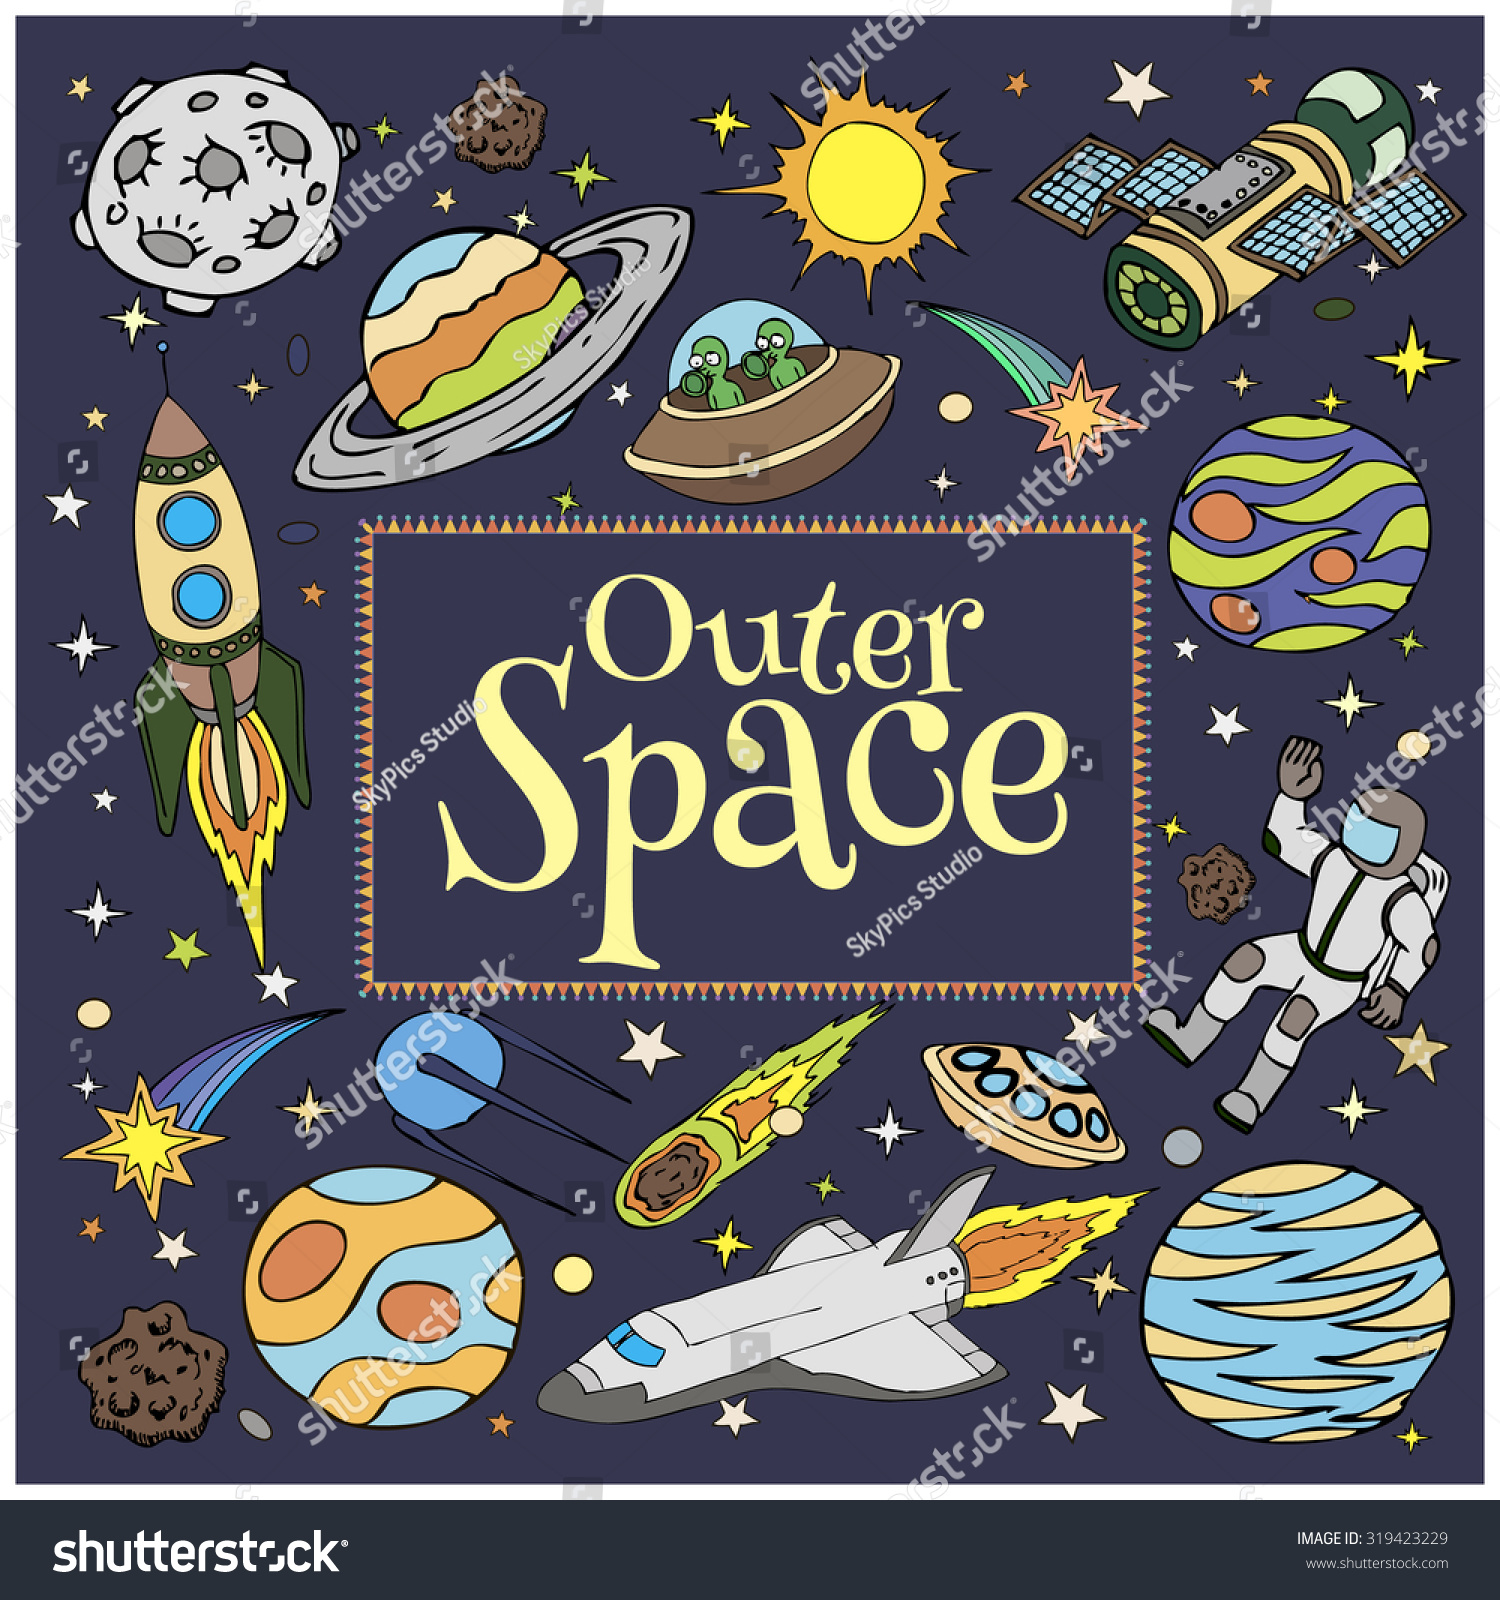 Outer space doodles symbols design elements stock vector for Outer space designs norwich